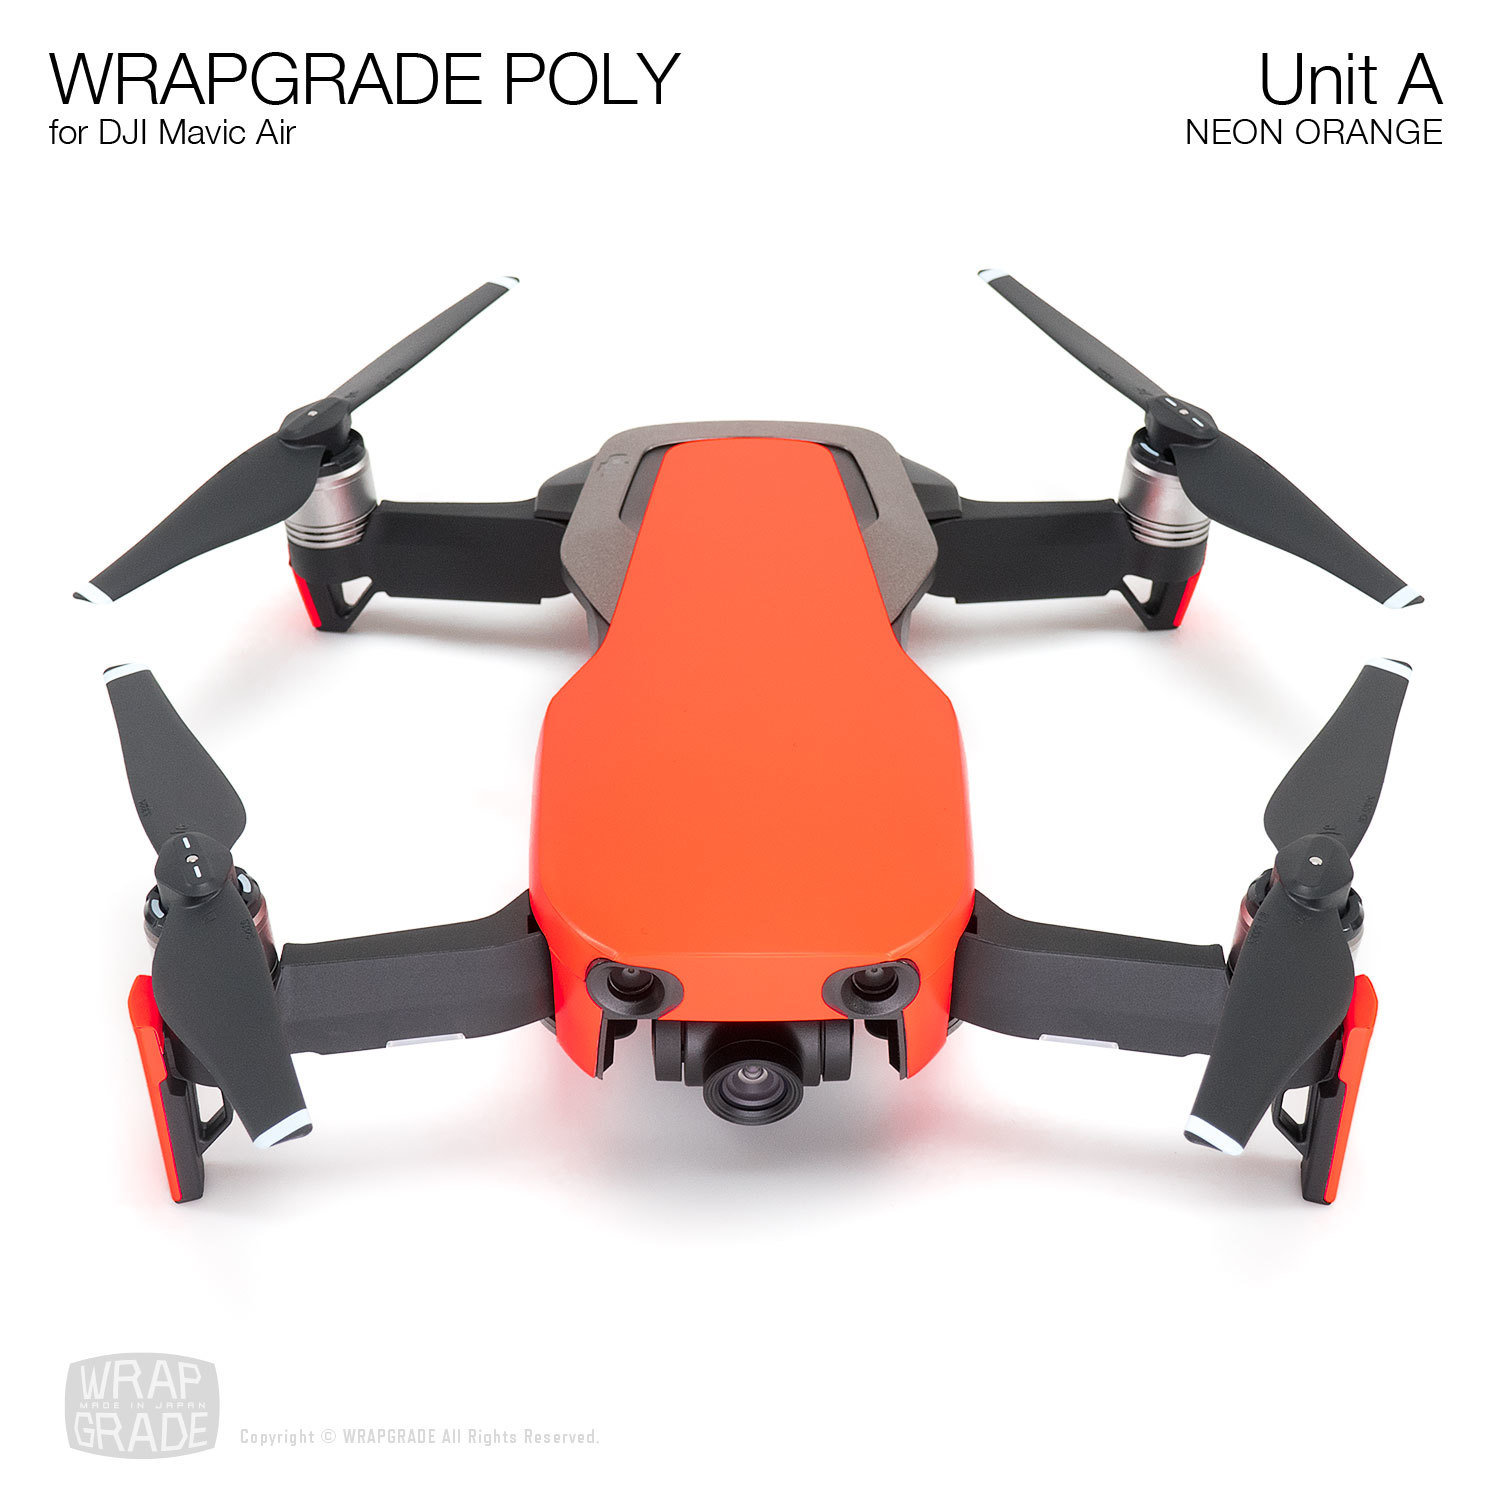 Wrapgrade Poly Skin for DJI Mavic Air | Unit A (NEON ORANGE)